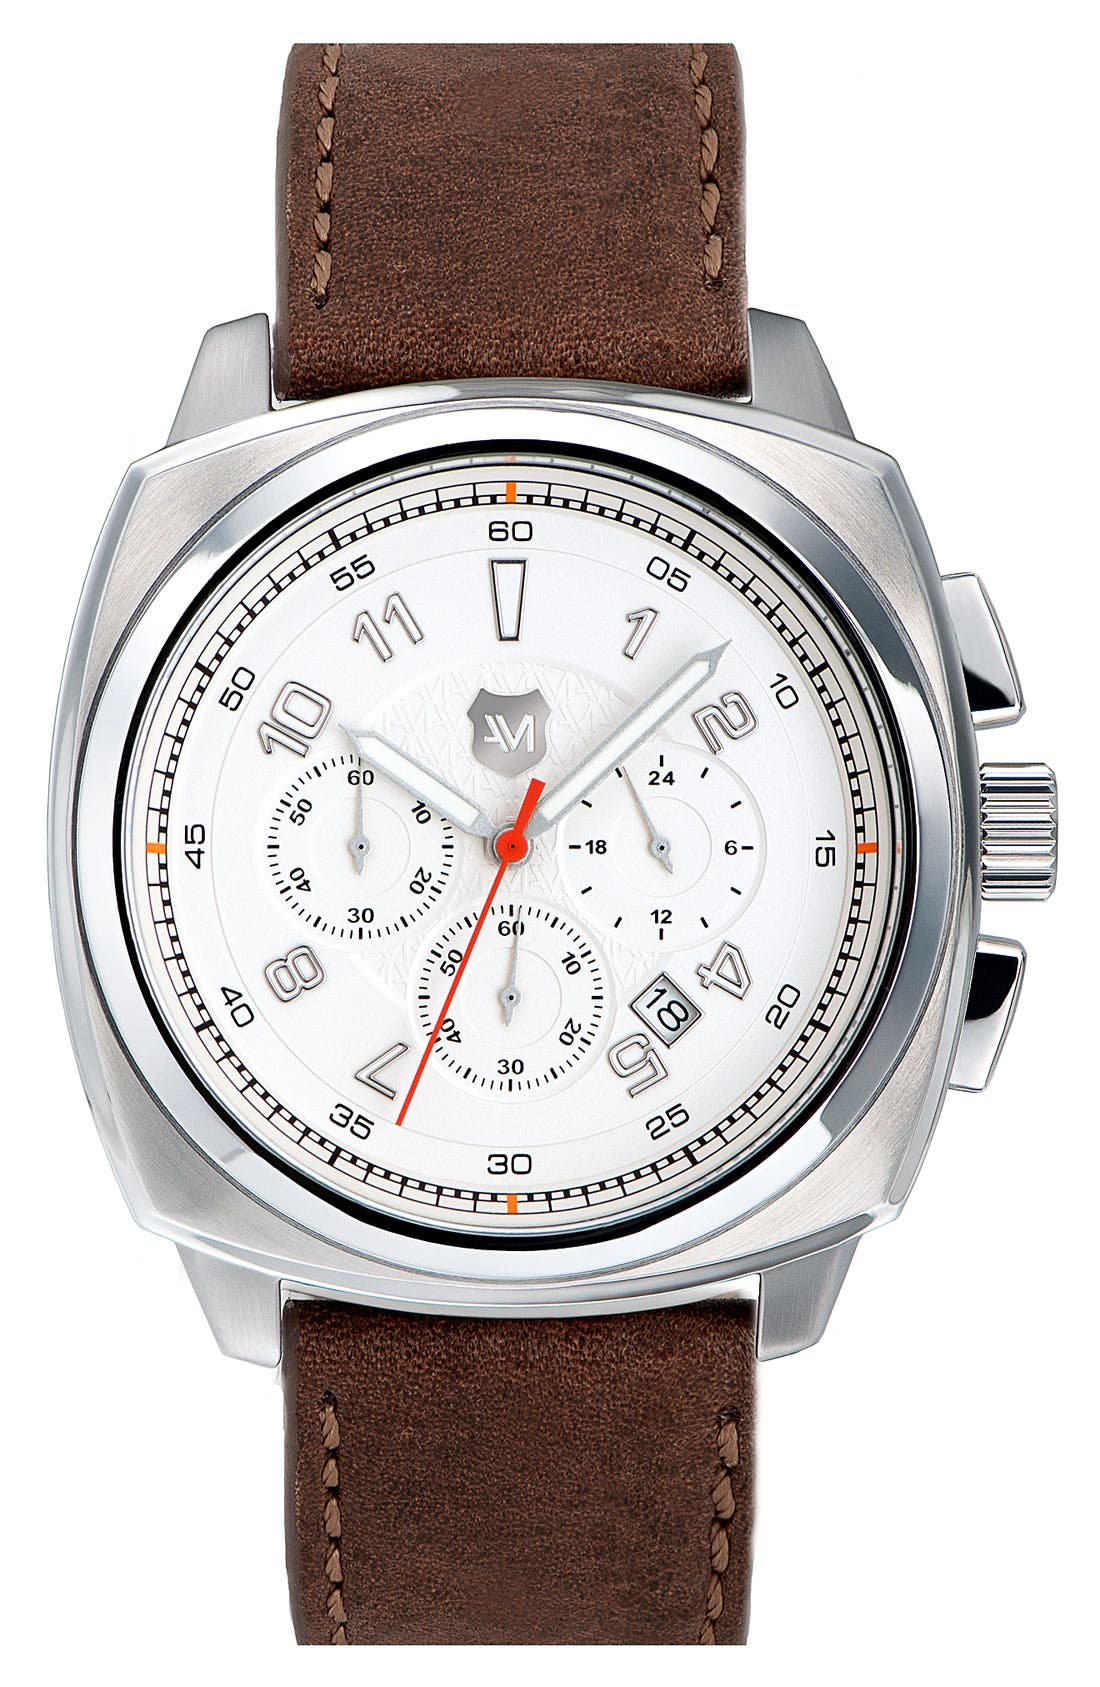 Alternate Image 1 Selected - Andrew Marc Watches 'Heritage Bomber' Leather Strap Watch